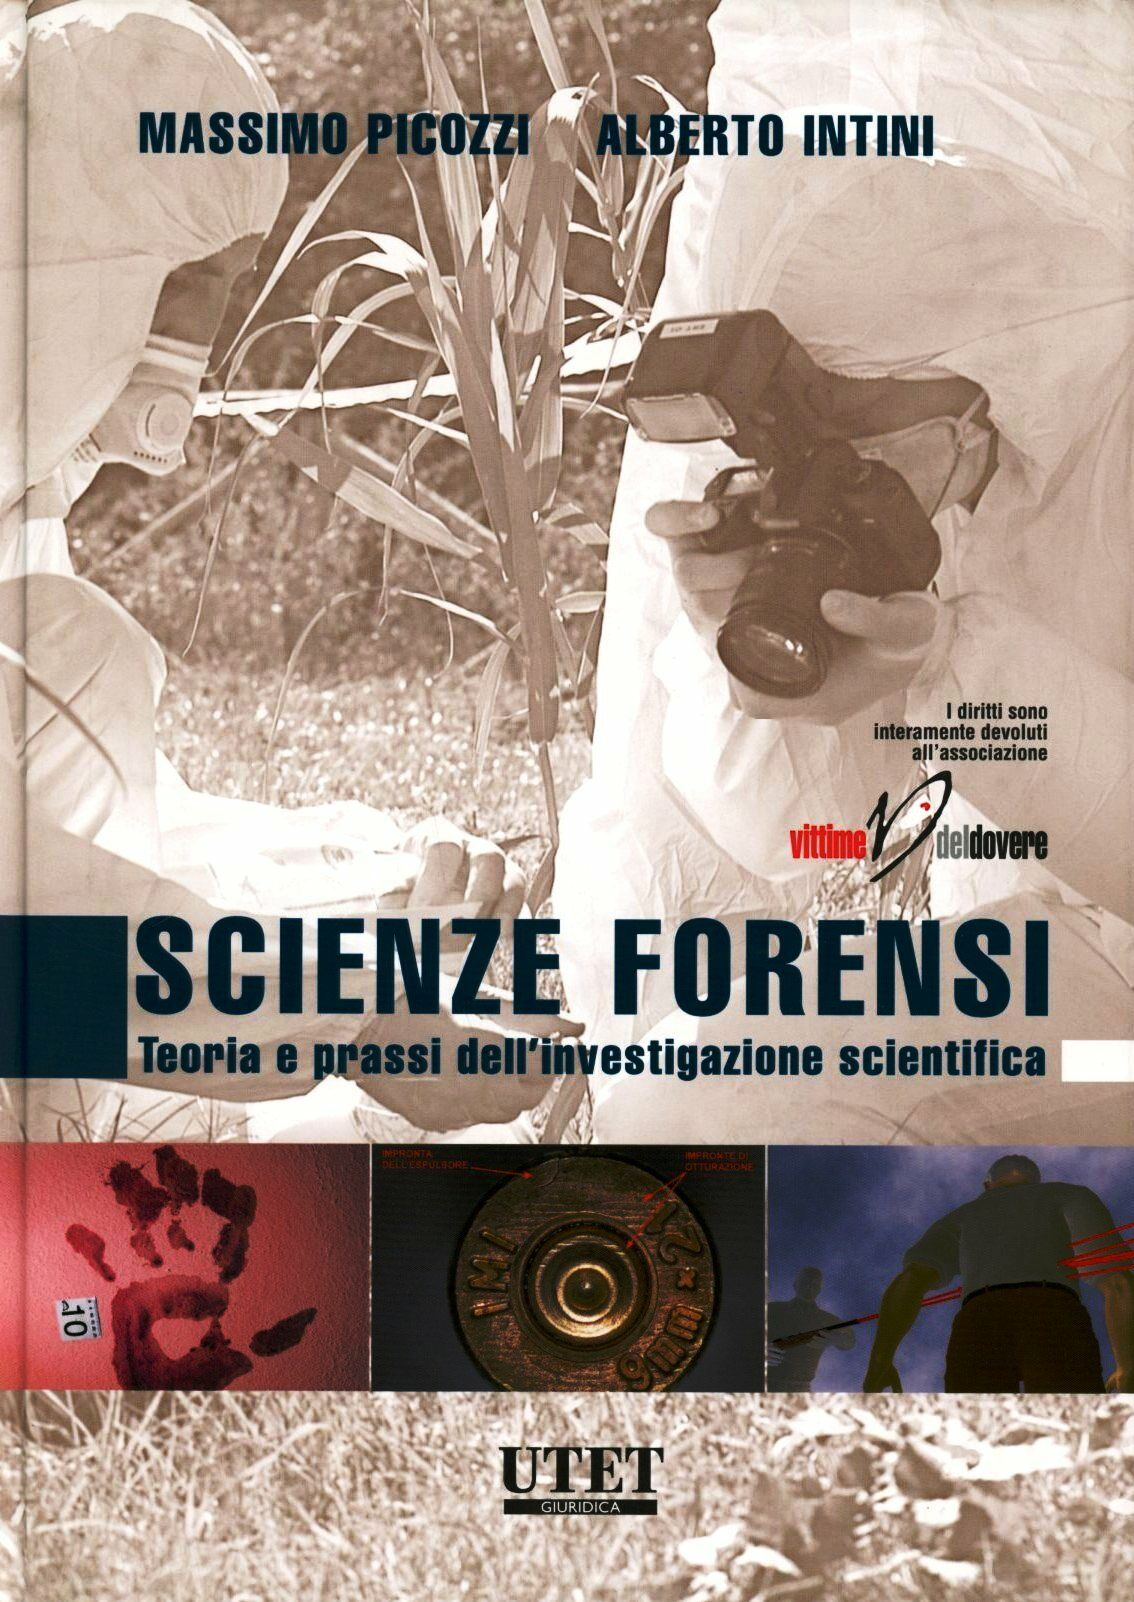 Scienze forensi. Teoria e prassi dell'investigazione scientifica